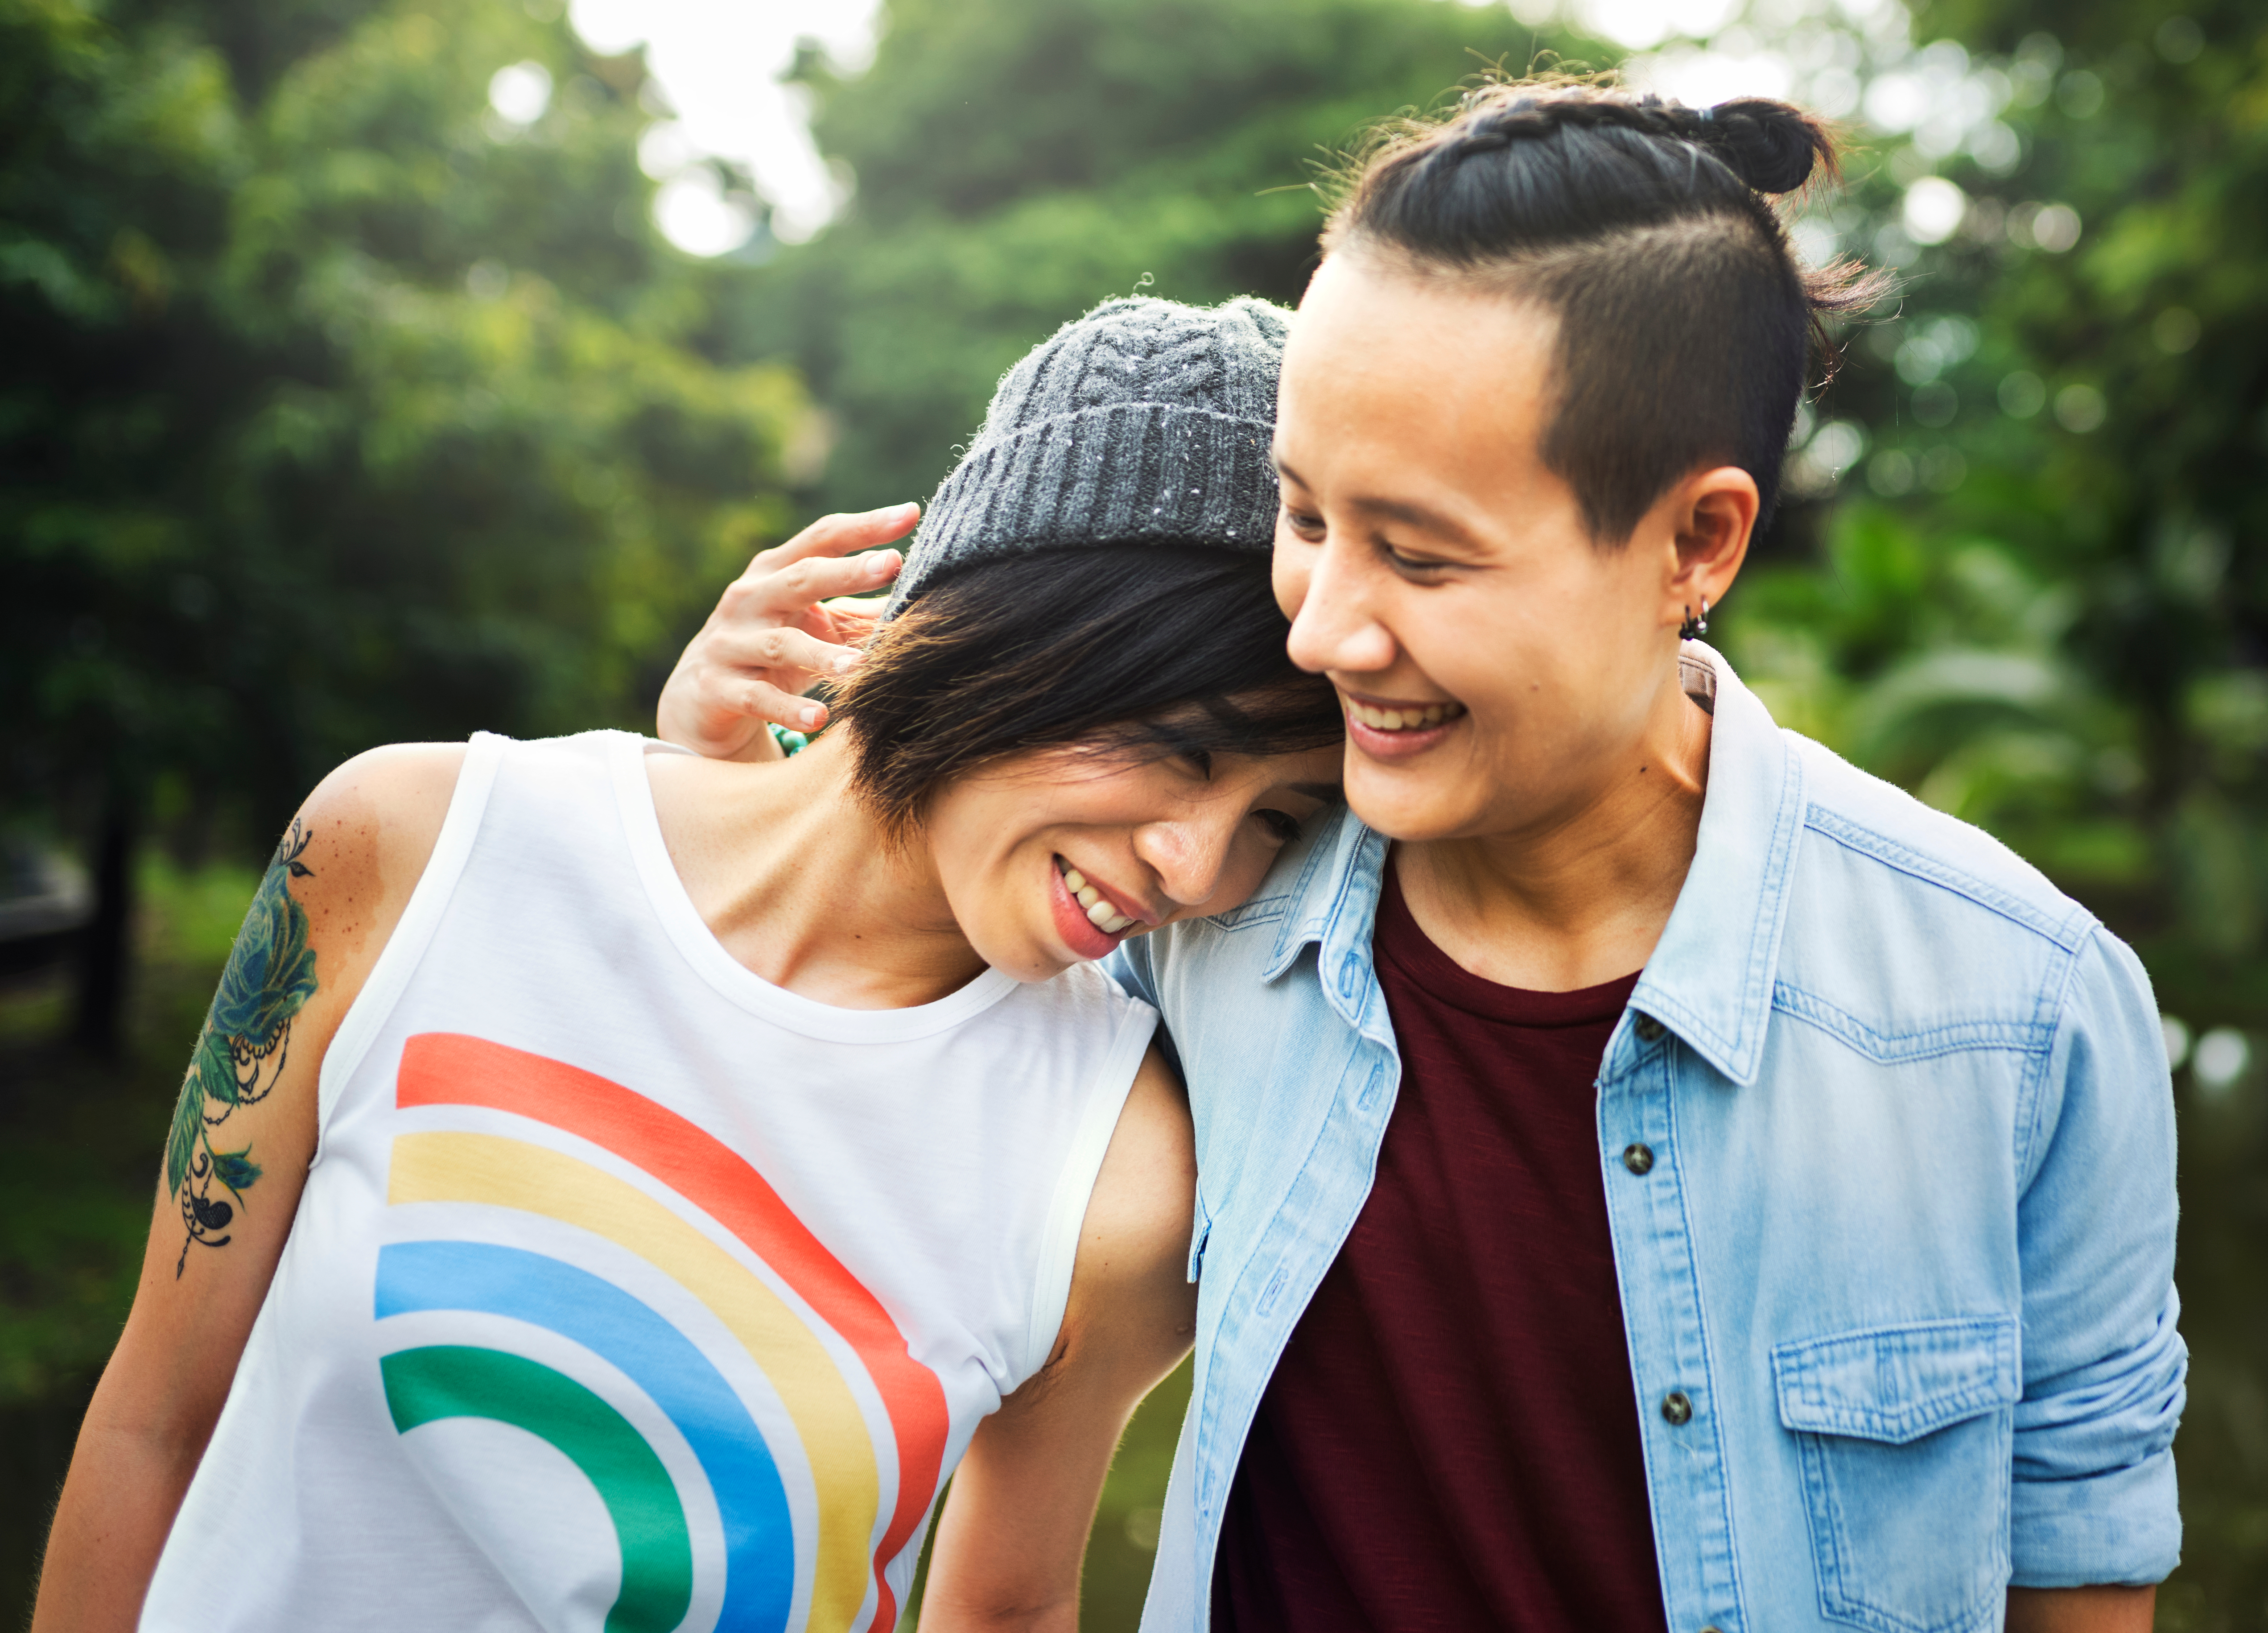 Brands that recognize non-traditional couples is part of an overall inclusion approach.